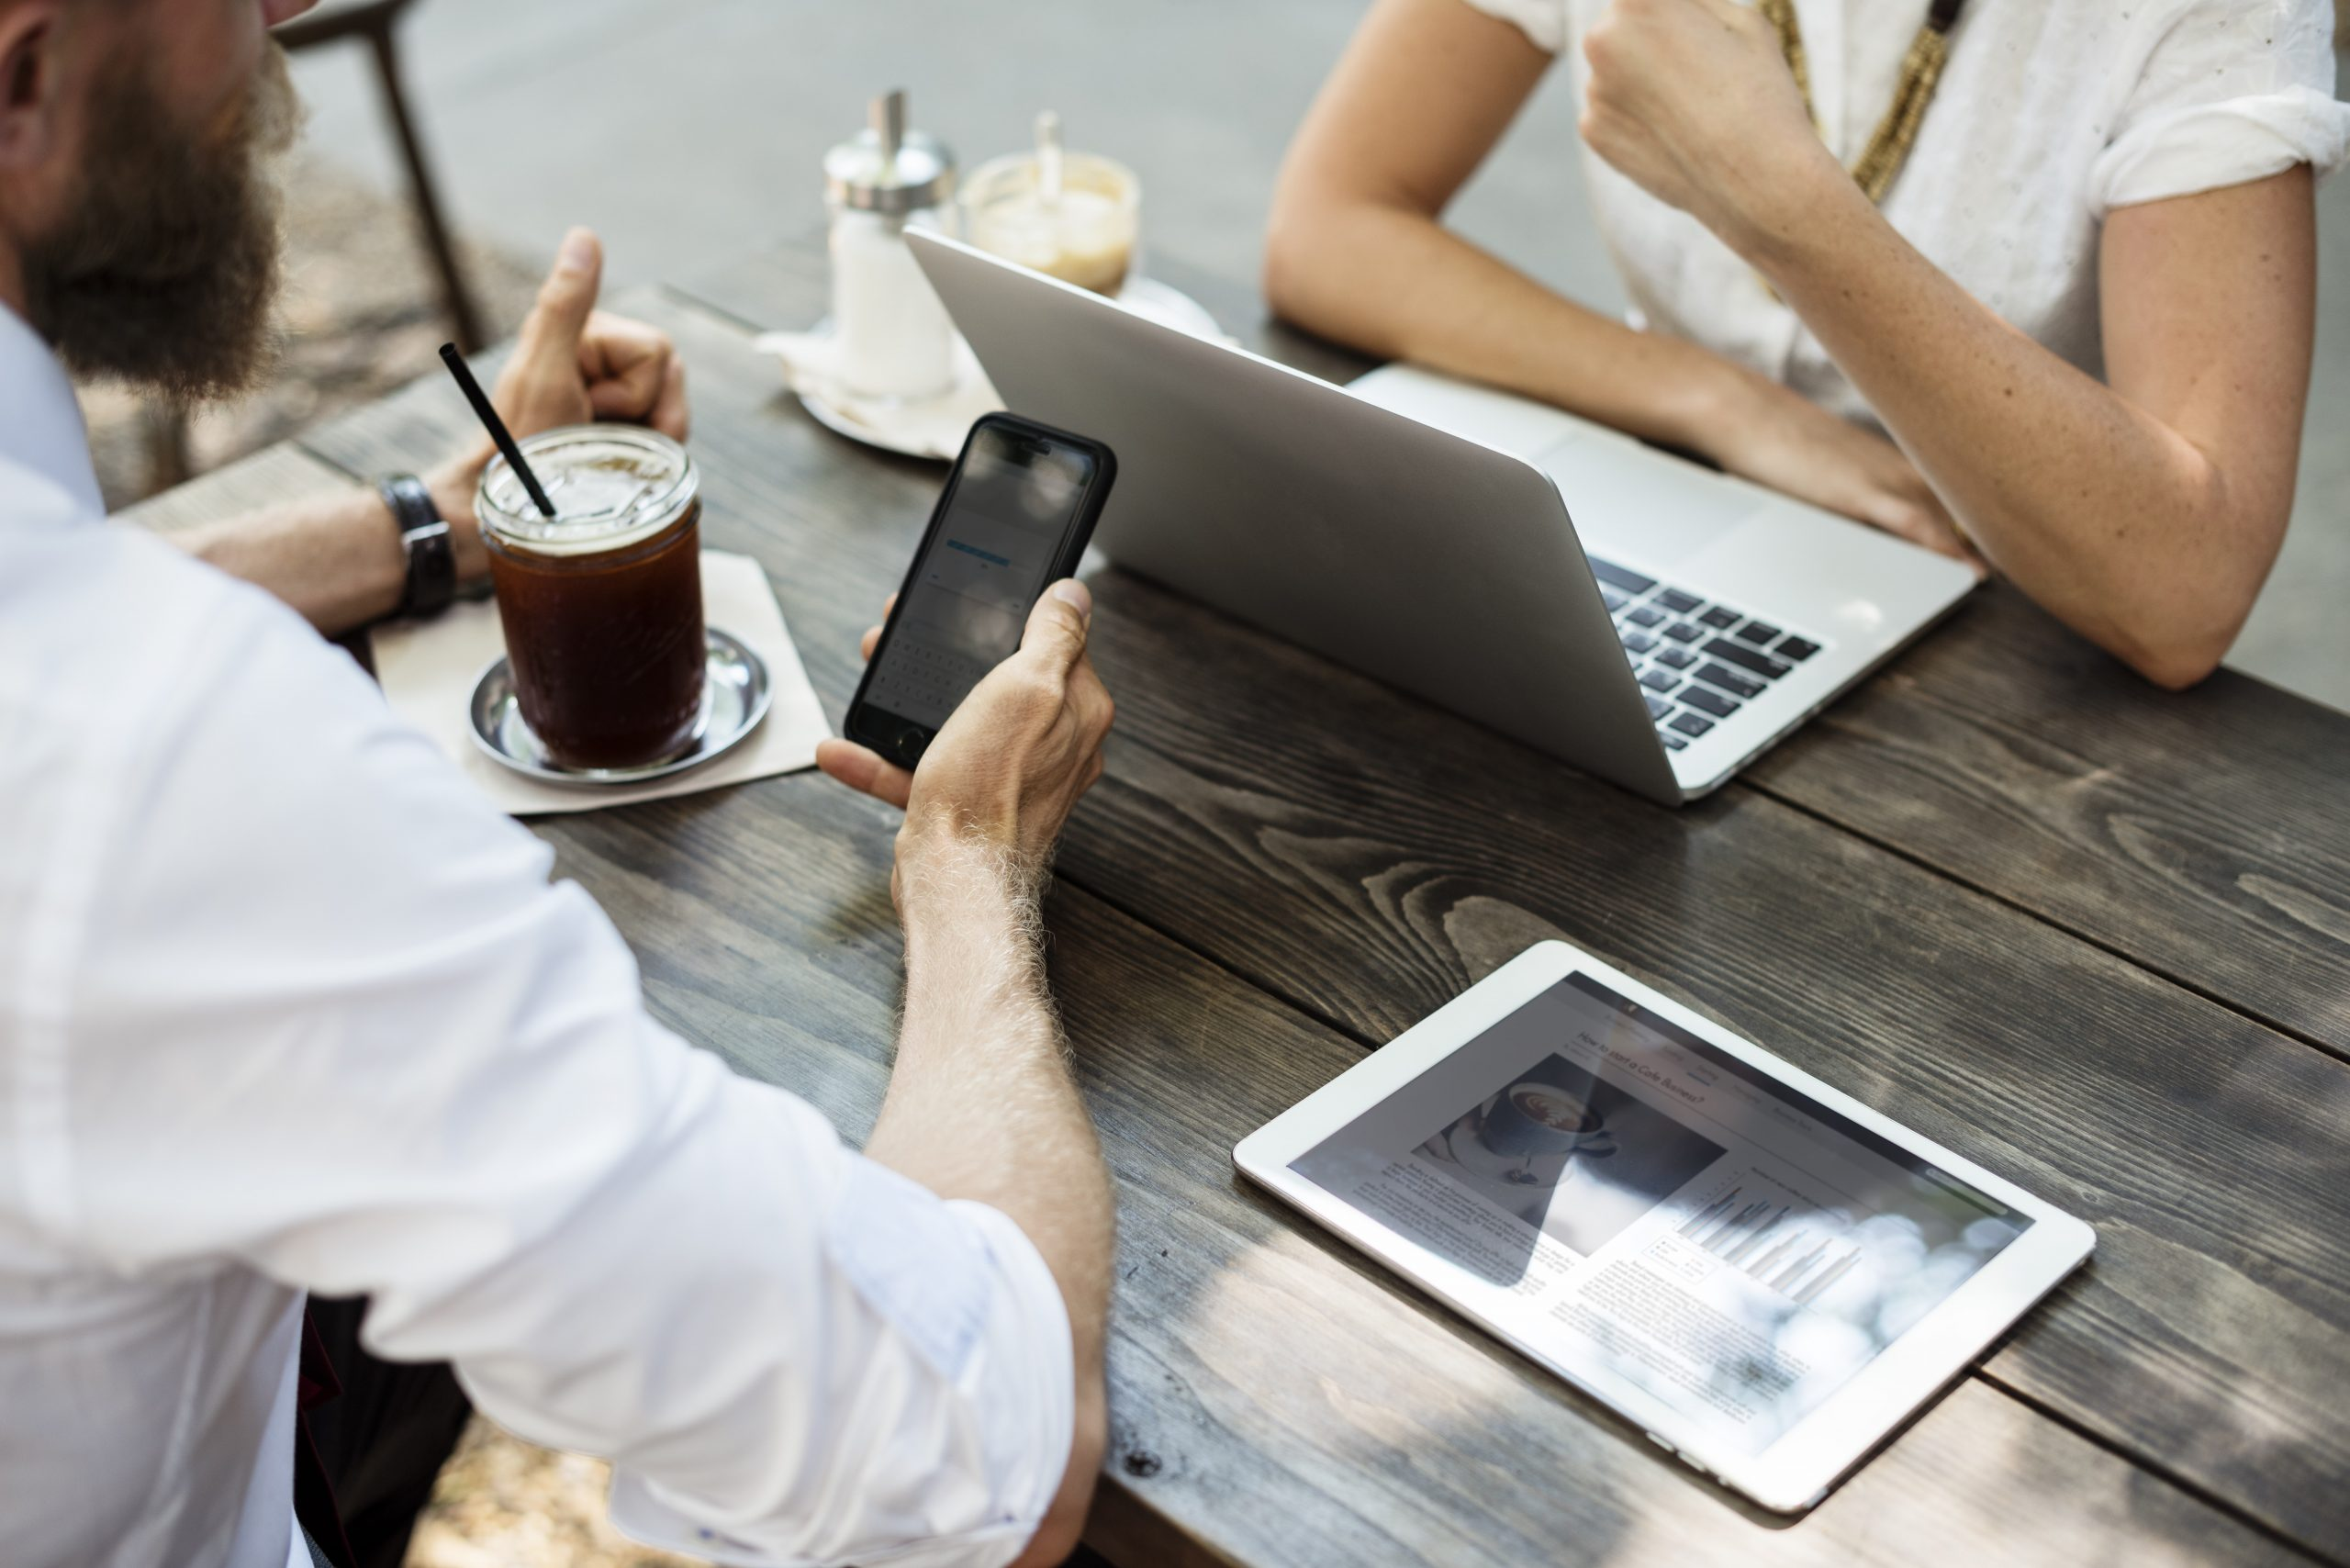 Business people hangout together at the coffee shop and discuss potential ways to recruit.